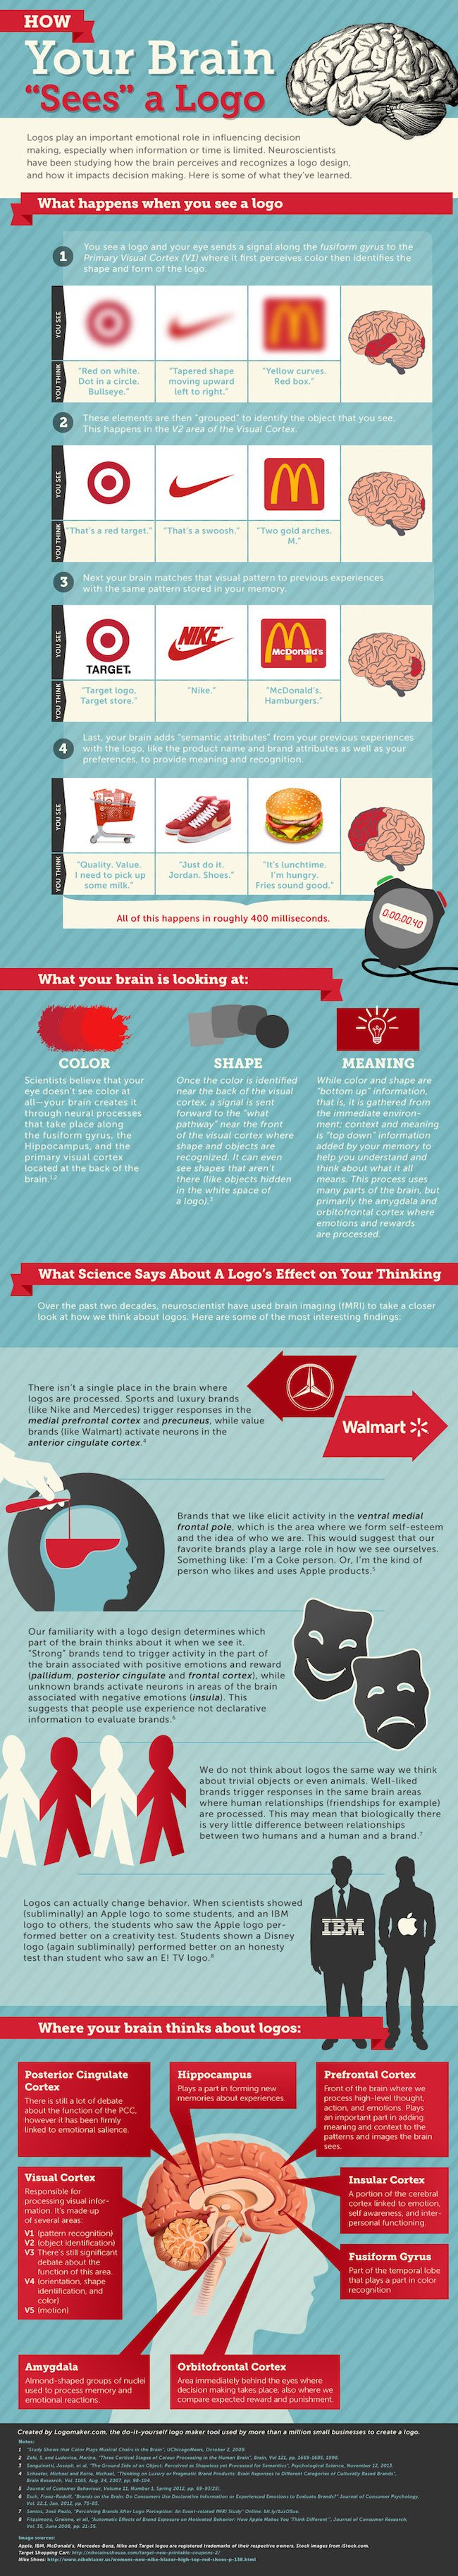 how-your-brain-sees-logos-infographic